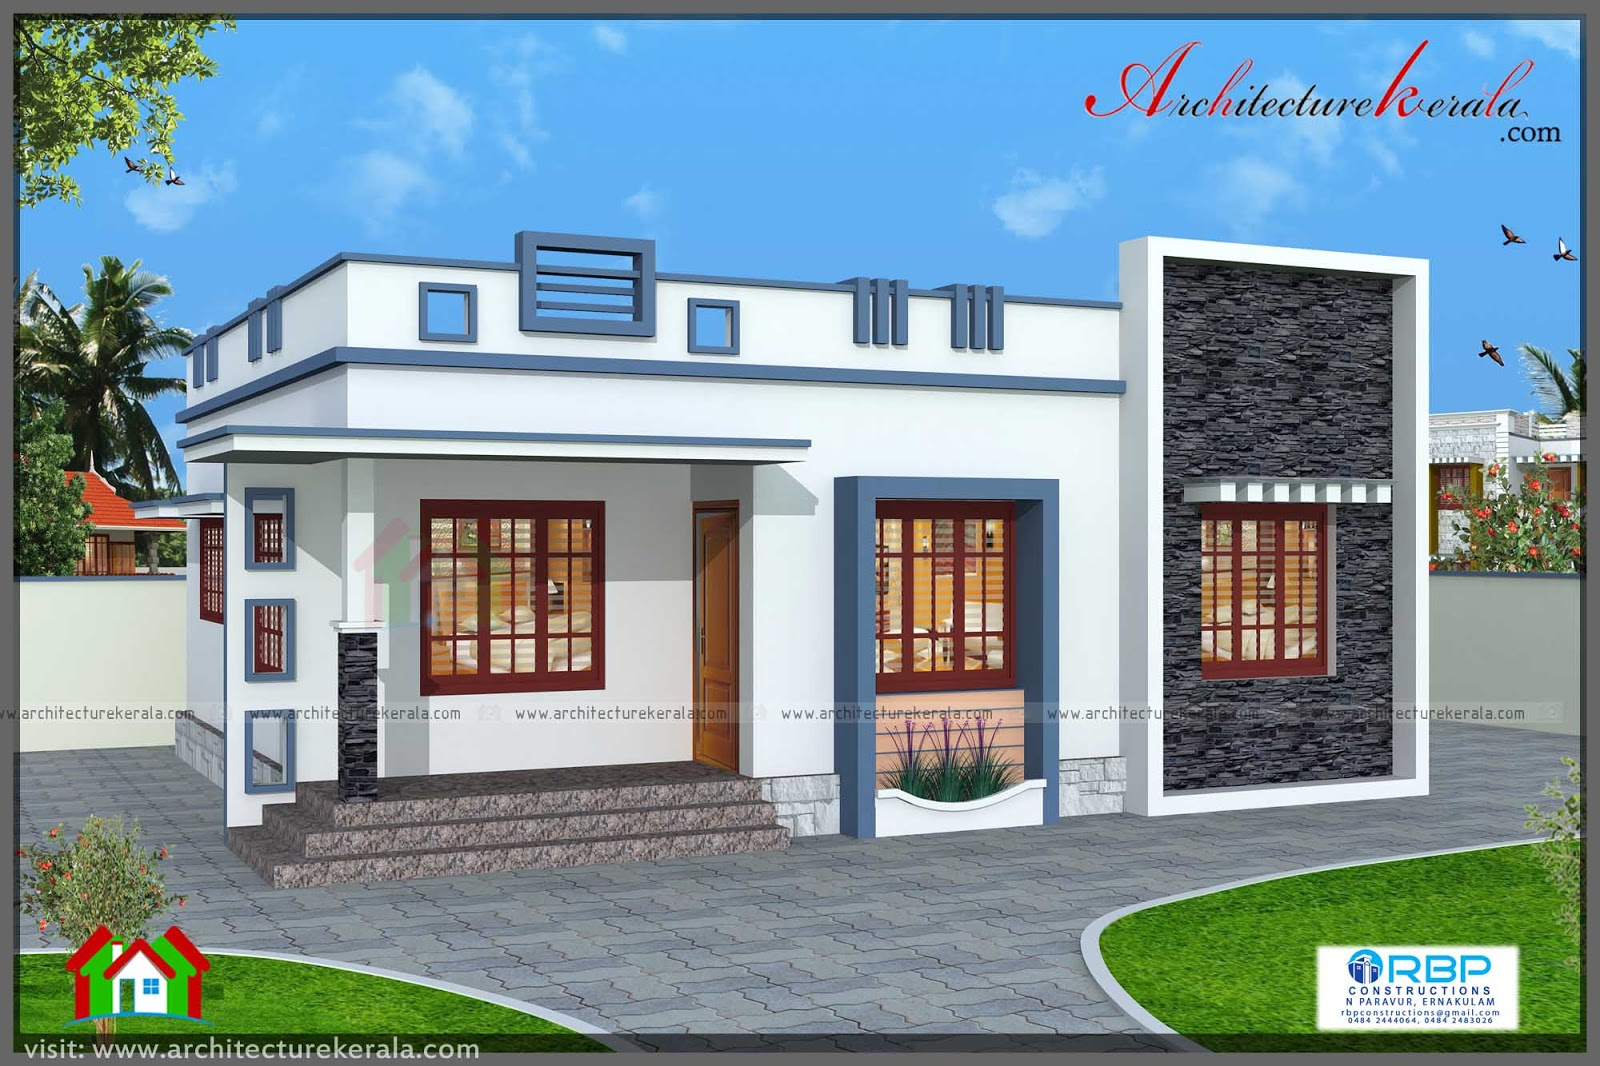 760 square feet 3 bedroom house plan architecture kerala for Plan of 3bhk house